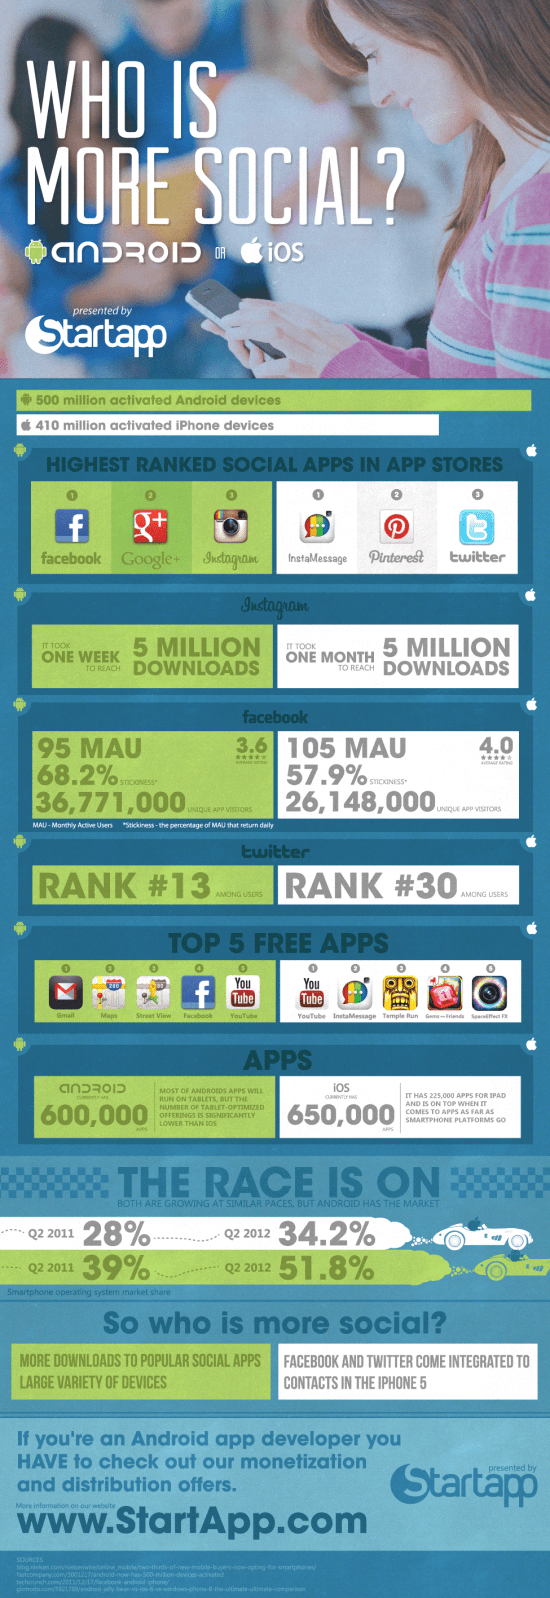 who is more social ios vs android infographic1 Who is More Social? Android or iOS? [Infographic]